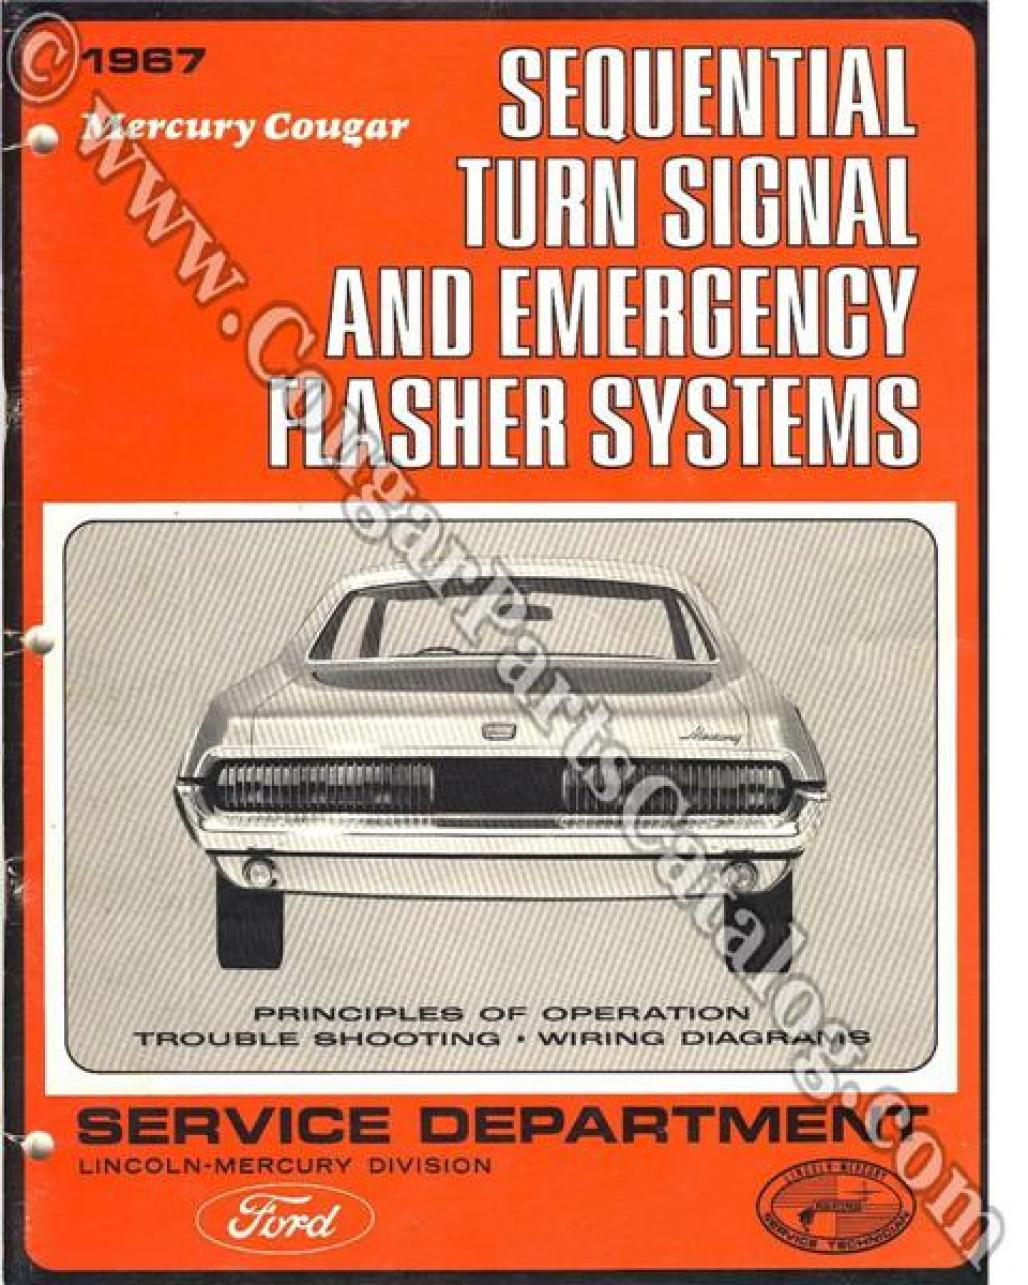 hight resolution of manual sequential turn signal service of operation free download 1967 mercury cougar 1967 mercury cougar at west coast classic cougar the